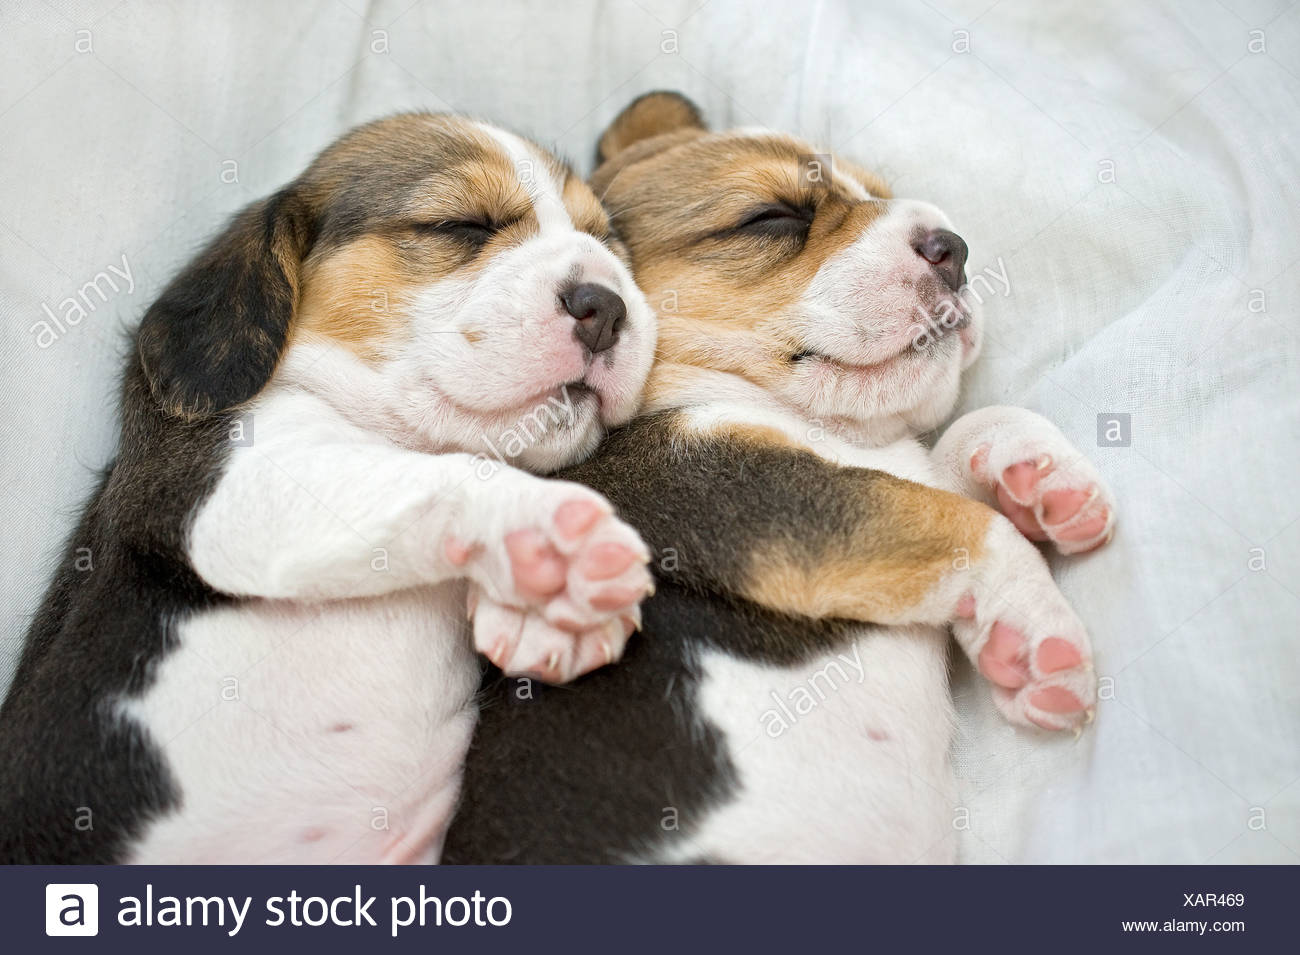 Beagle dog. Two puppies sleeping on a blanket - Stock Image